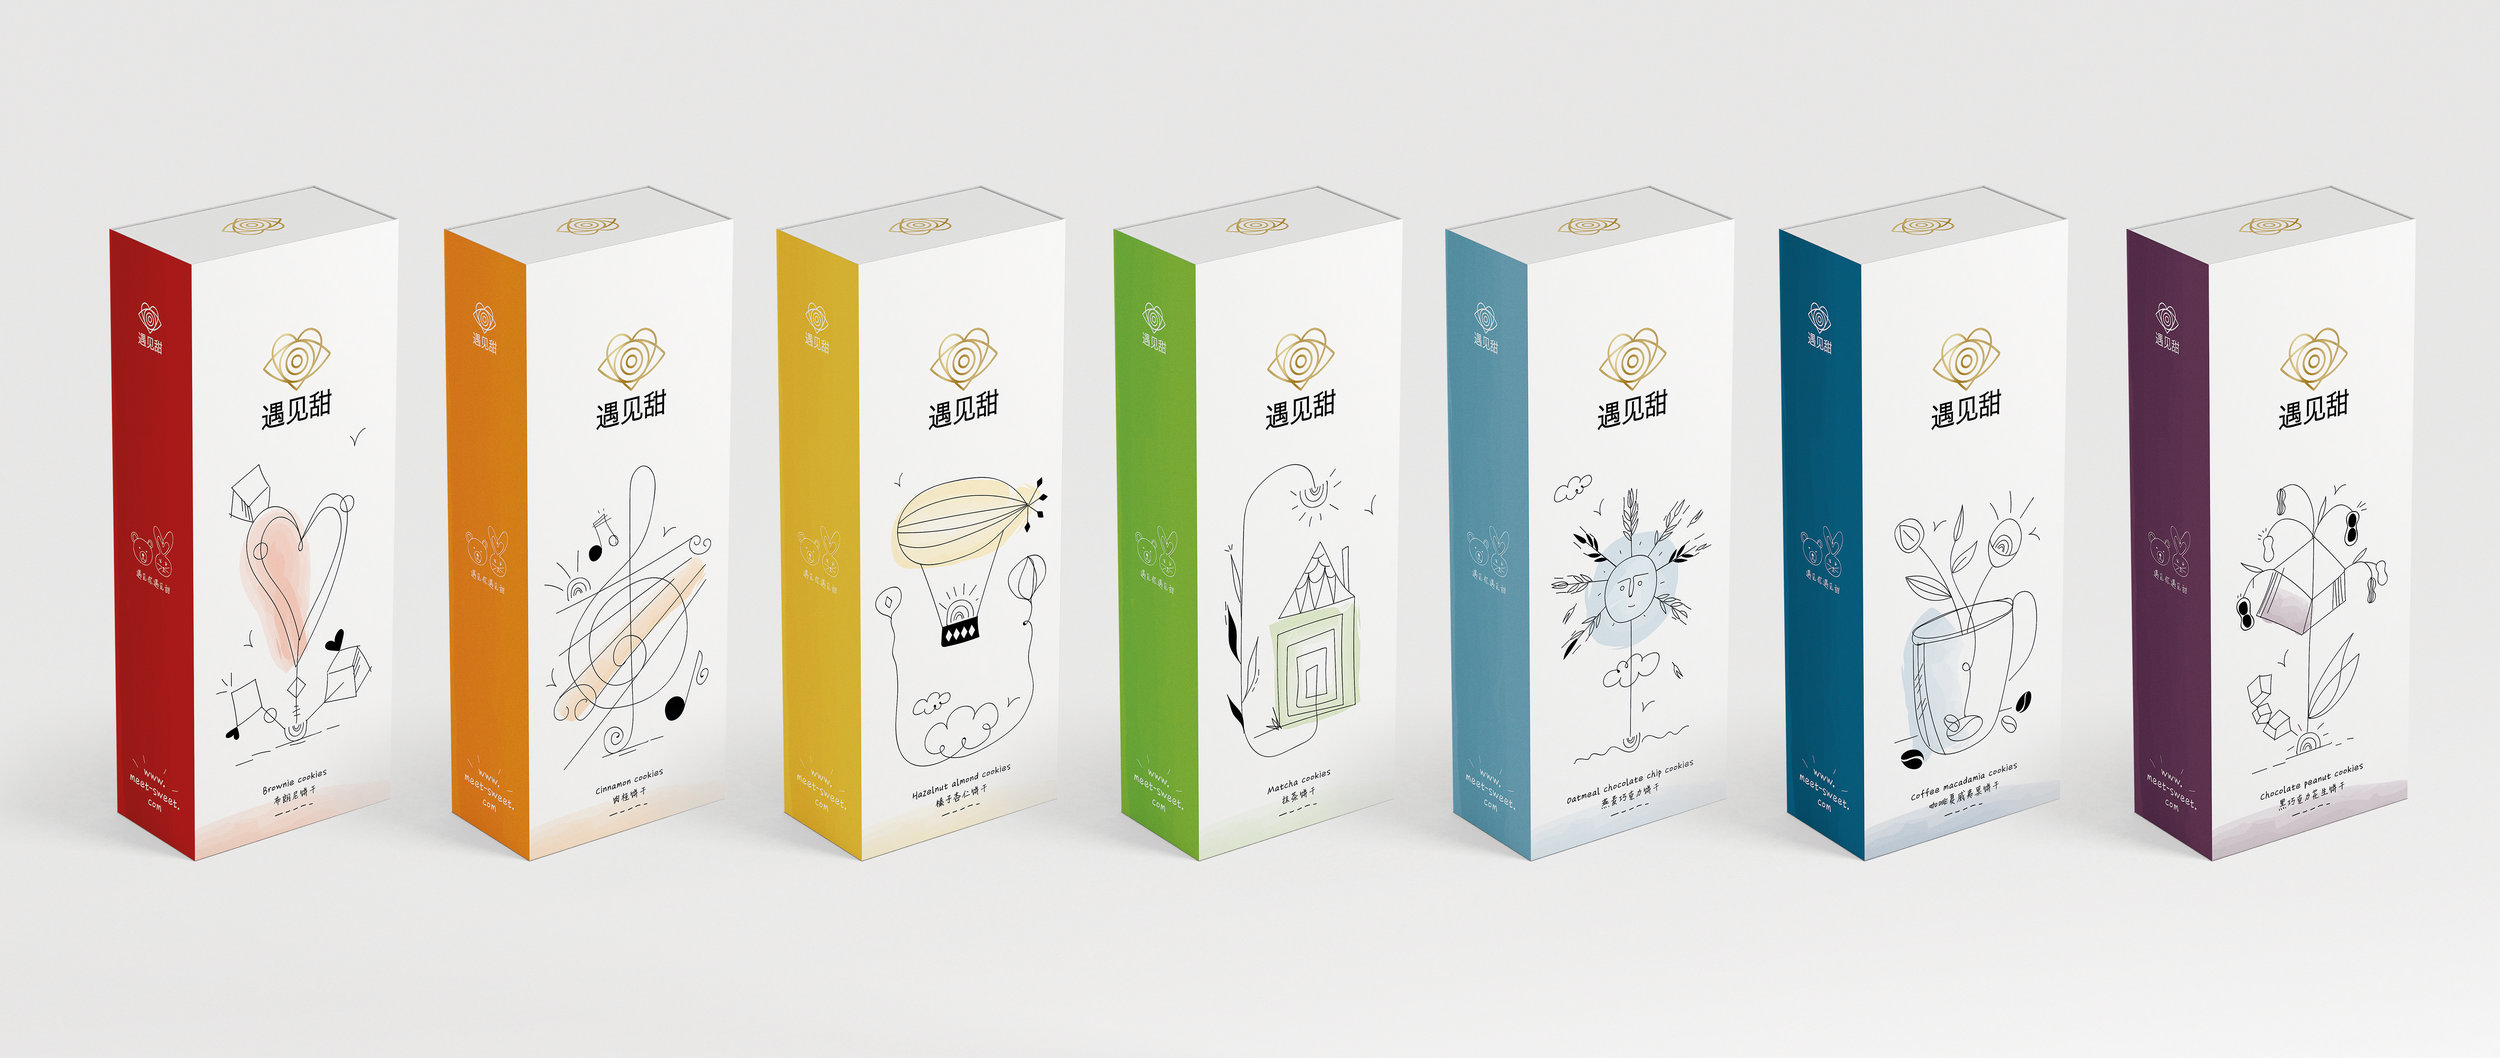 Brand and Packaging Design for Hand-Crafted High Quality Biscuits